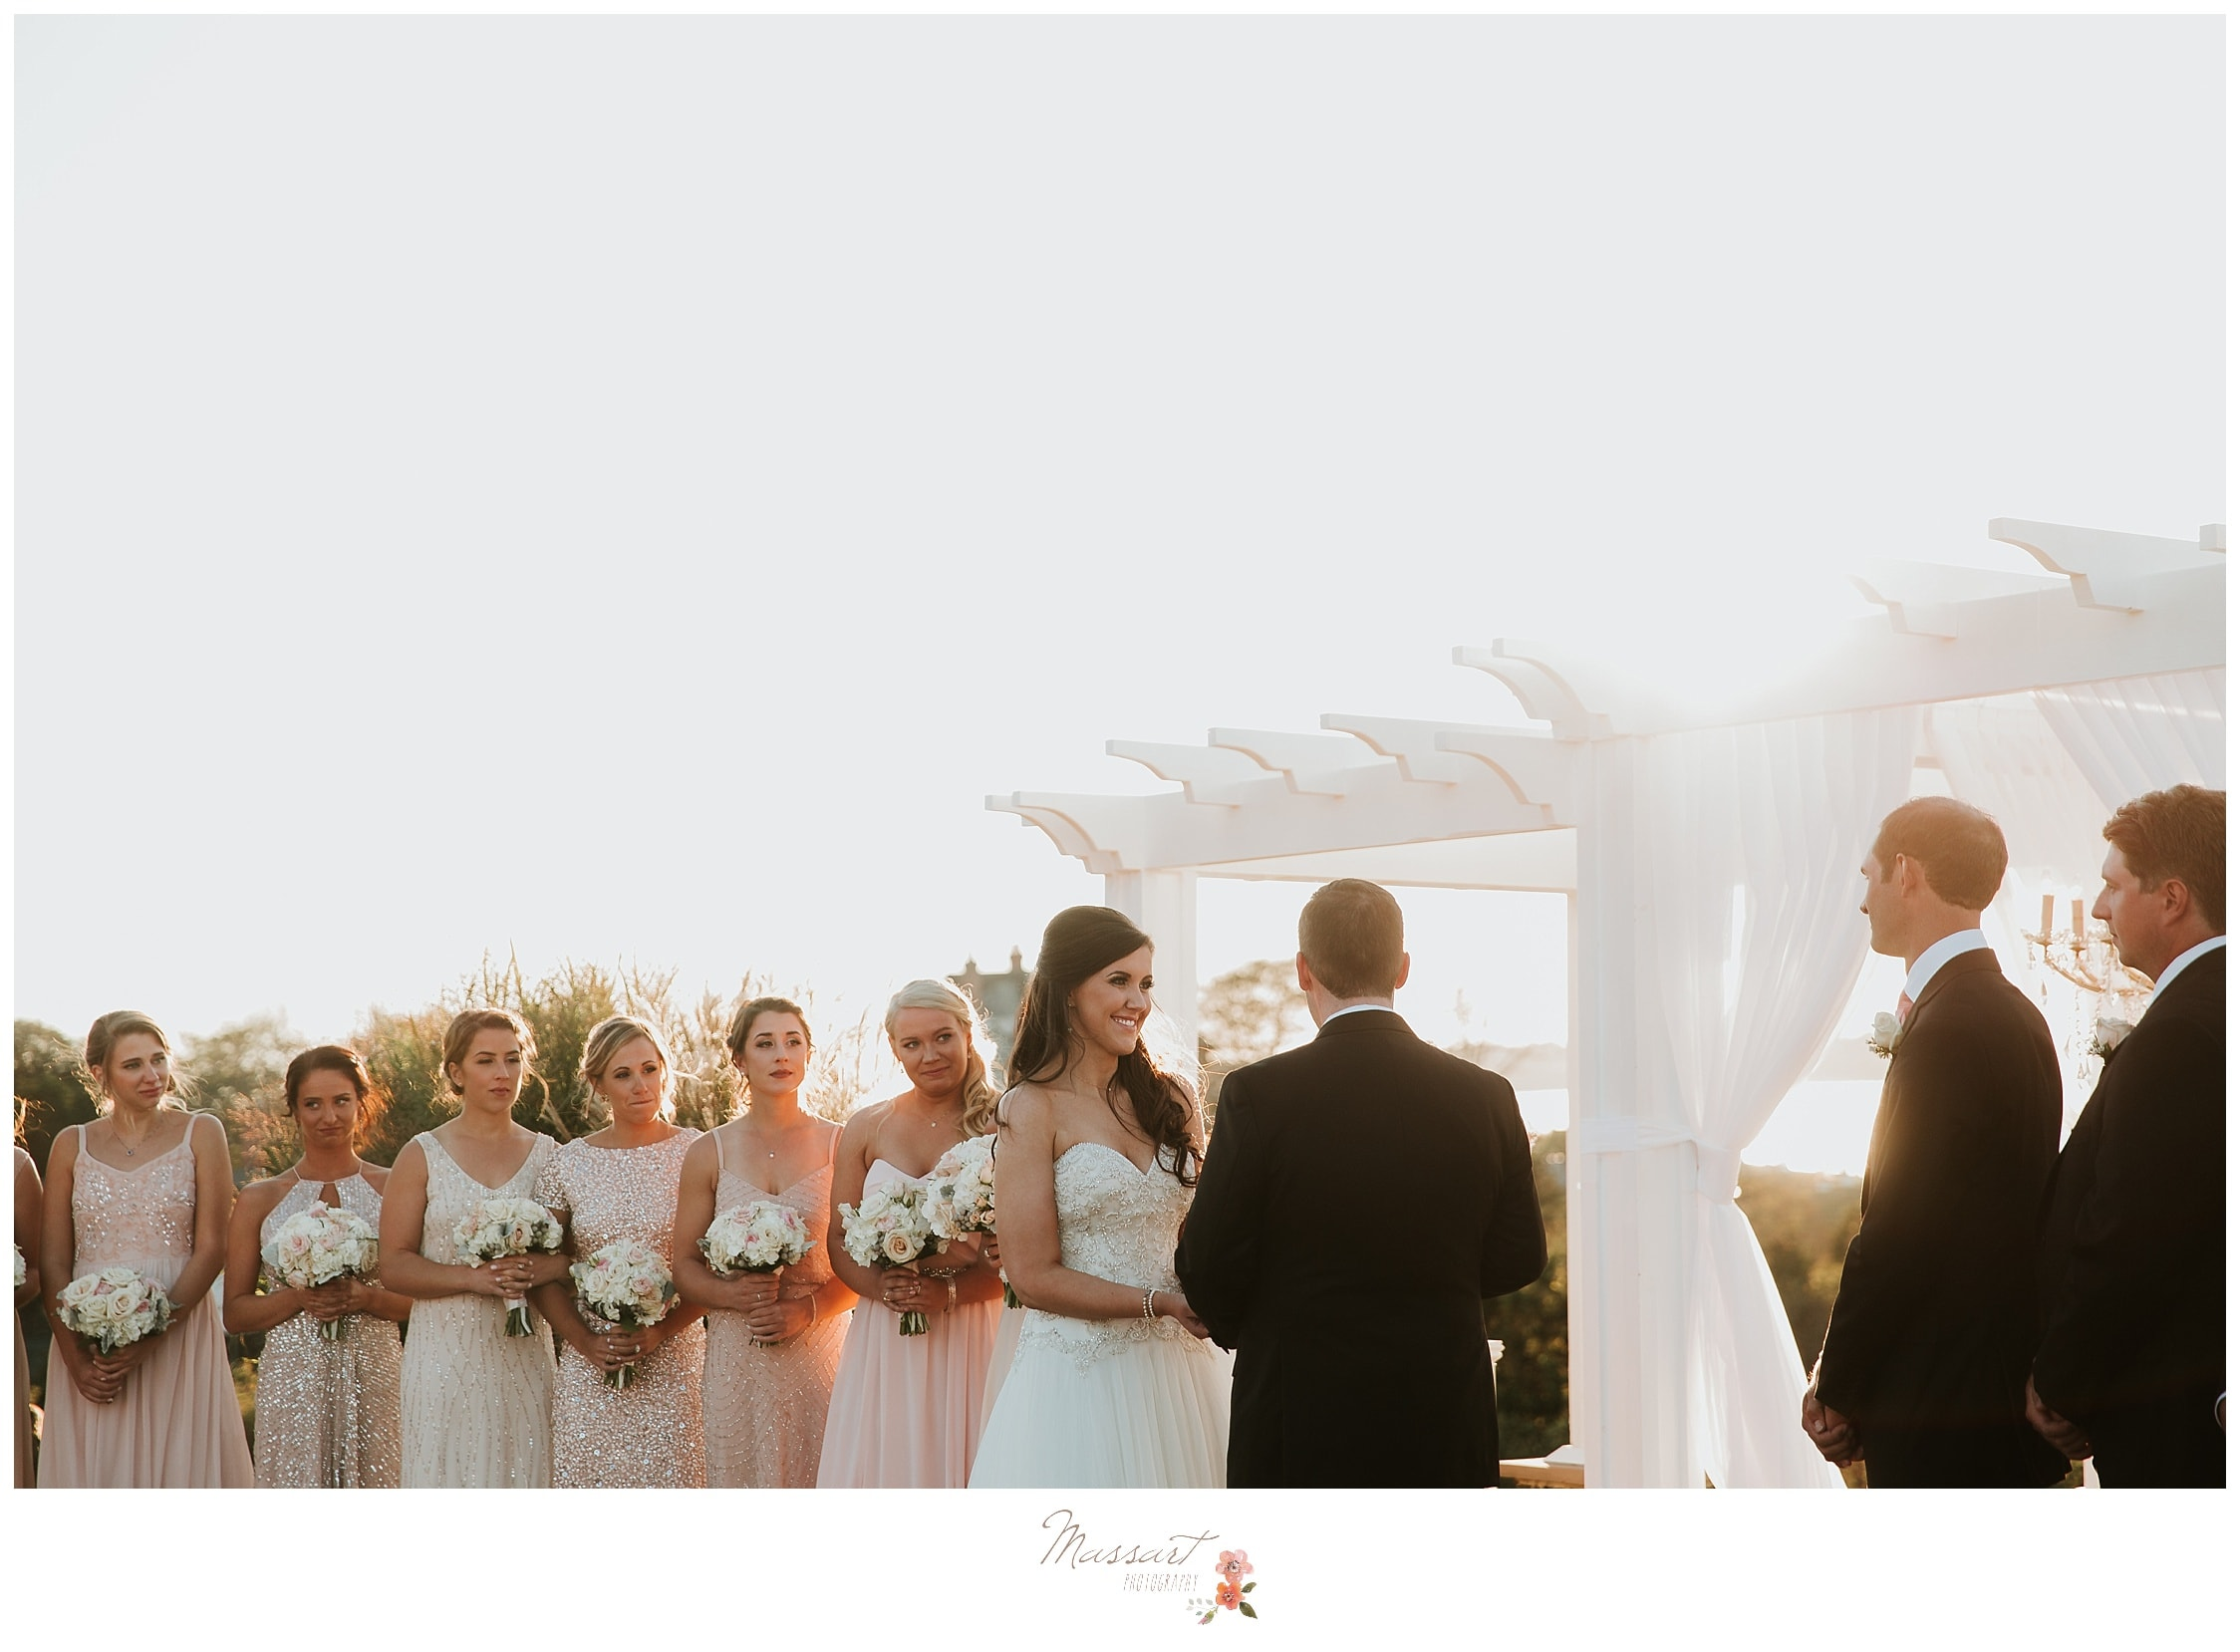 Wedding ceremony takes place under the trellis at Ocean Cliff Resort photographed by Massart Photography RI